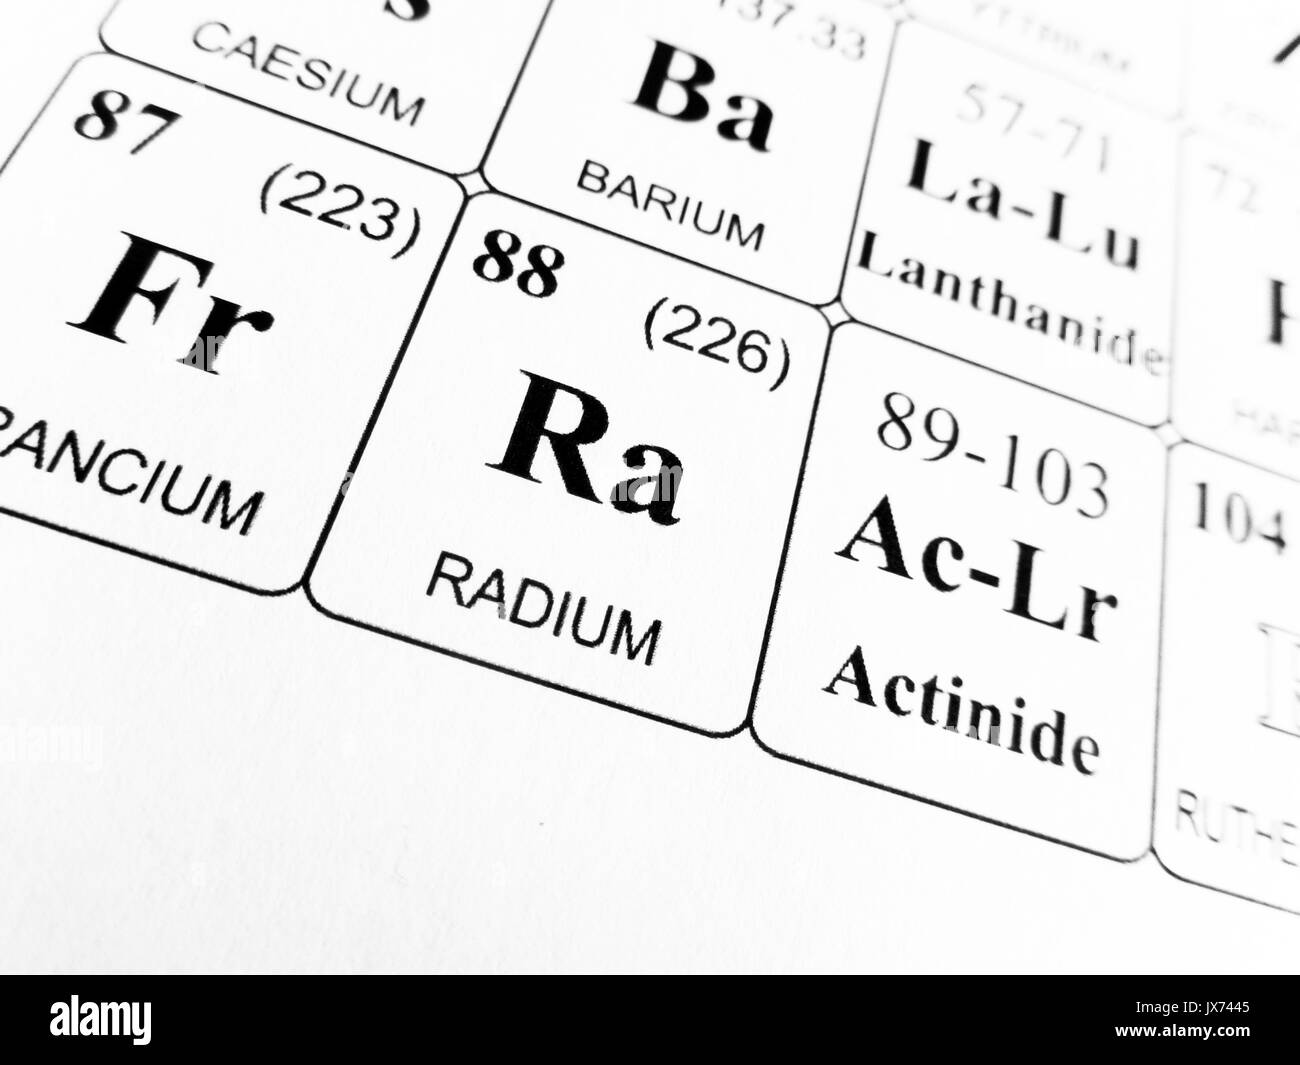 Radium on the periodic table of the elements stock photo royalty radium on the periodic table of the elements gamestrikefo Images